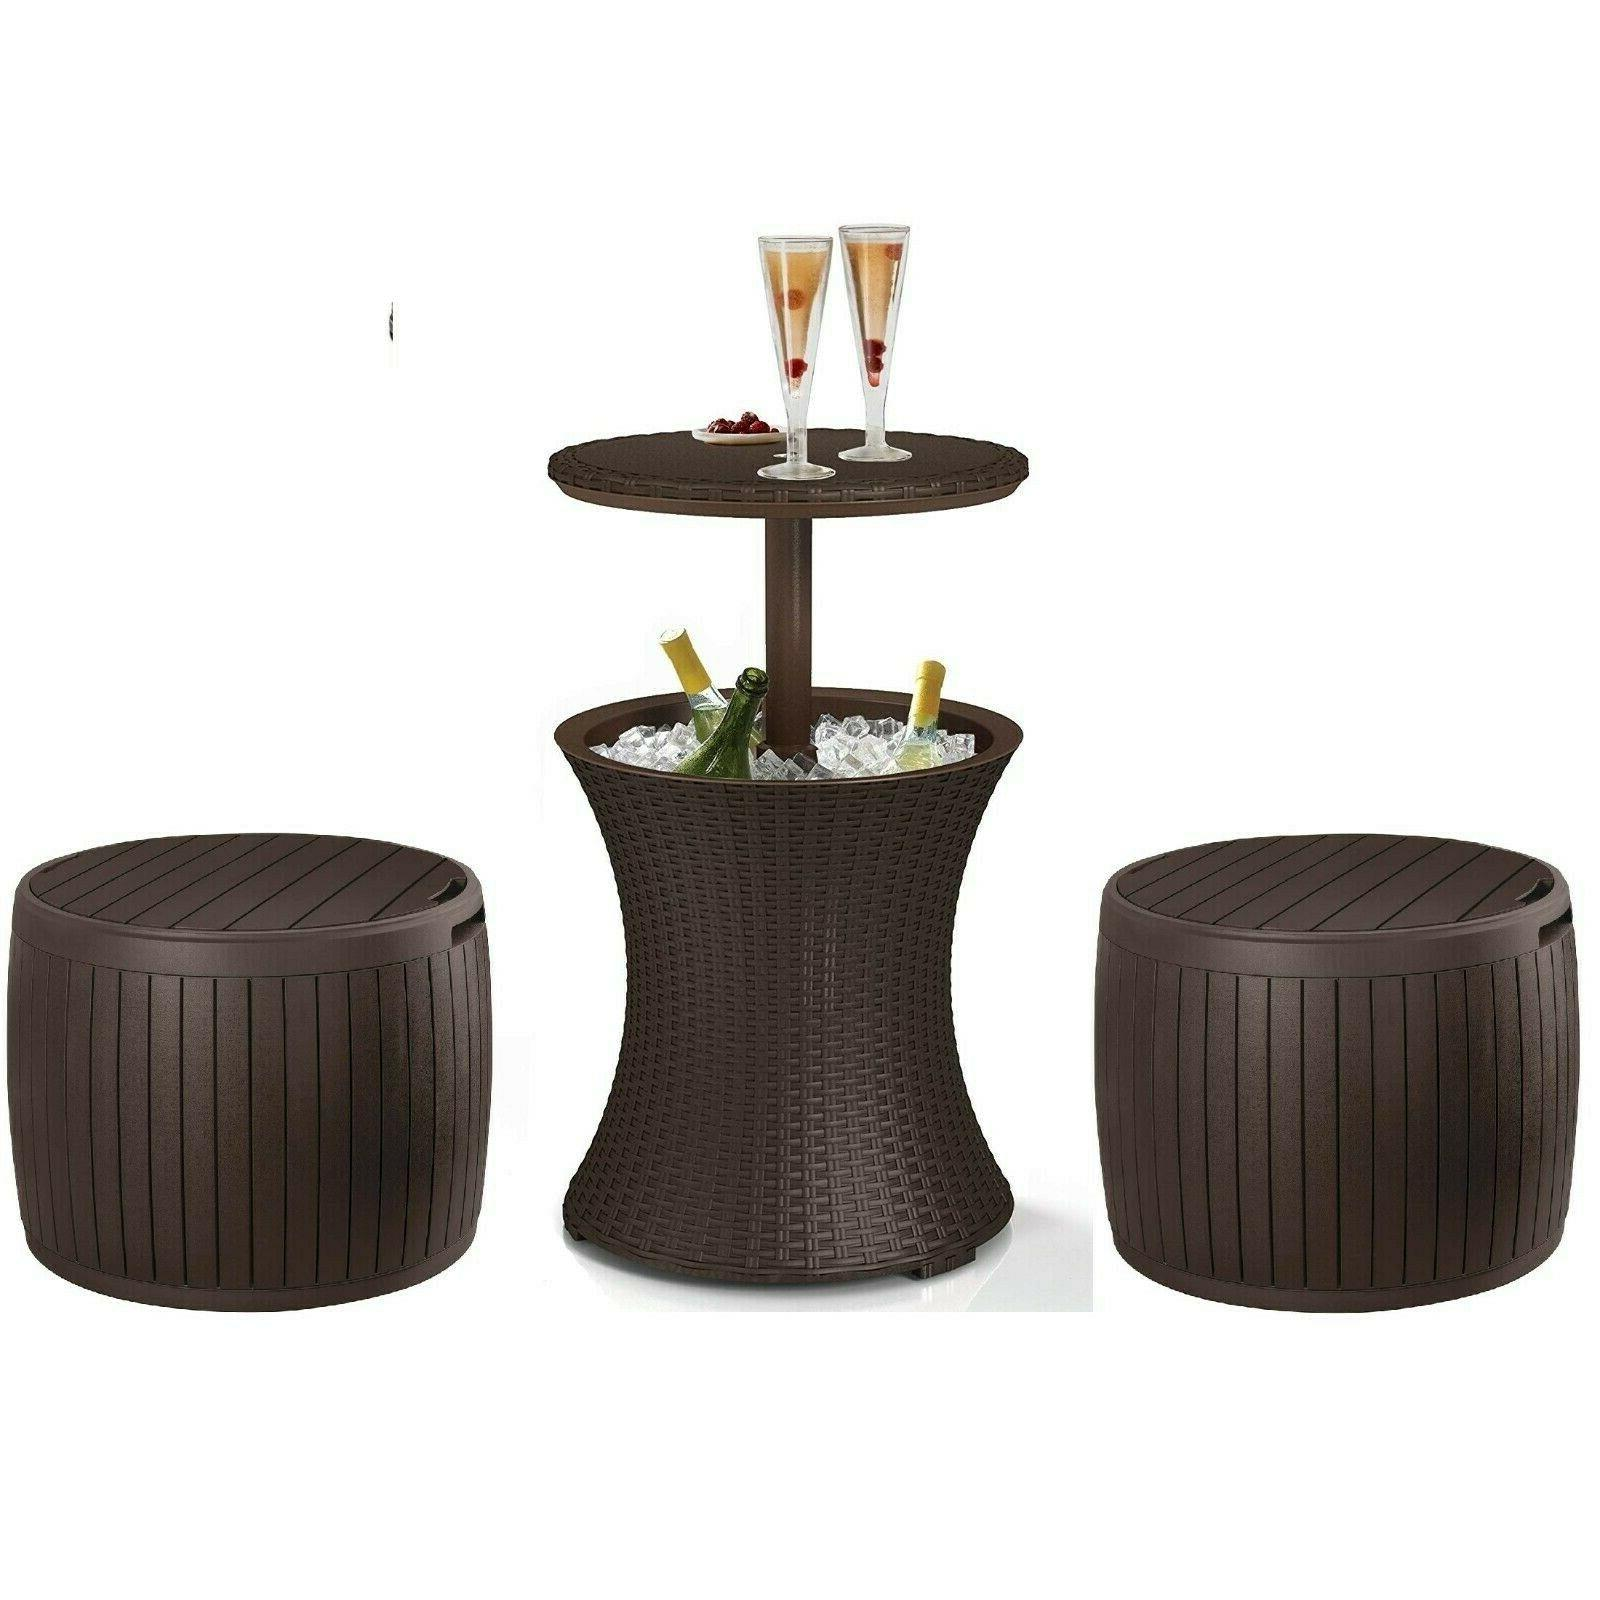 furniture for patio decor and outdoor seating